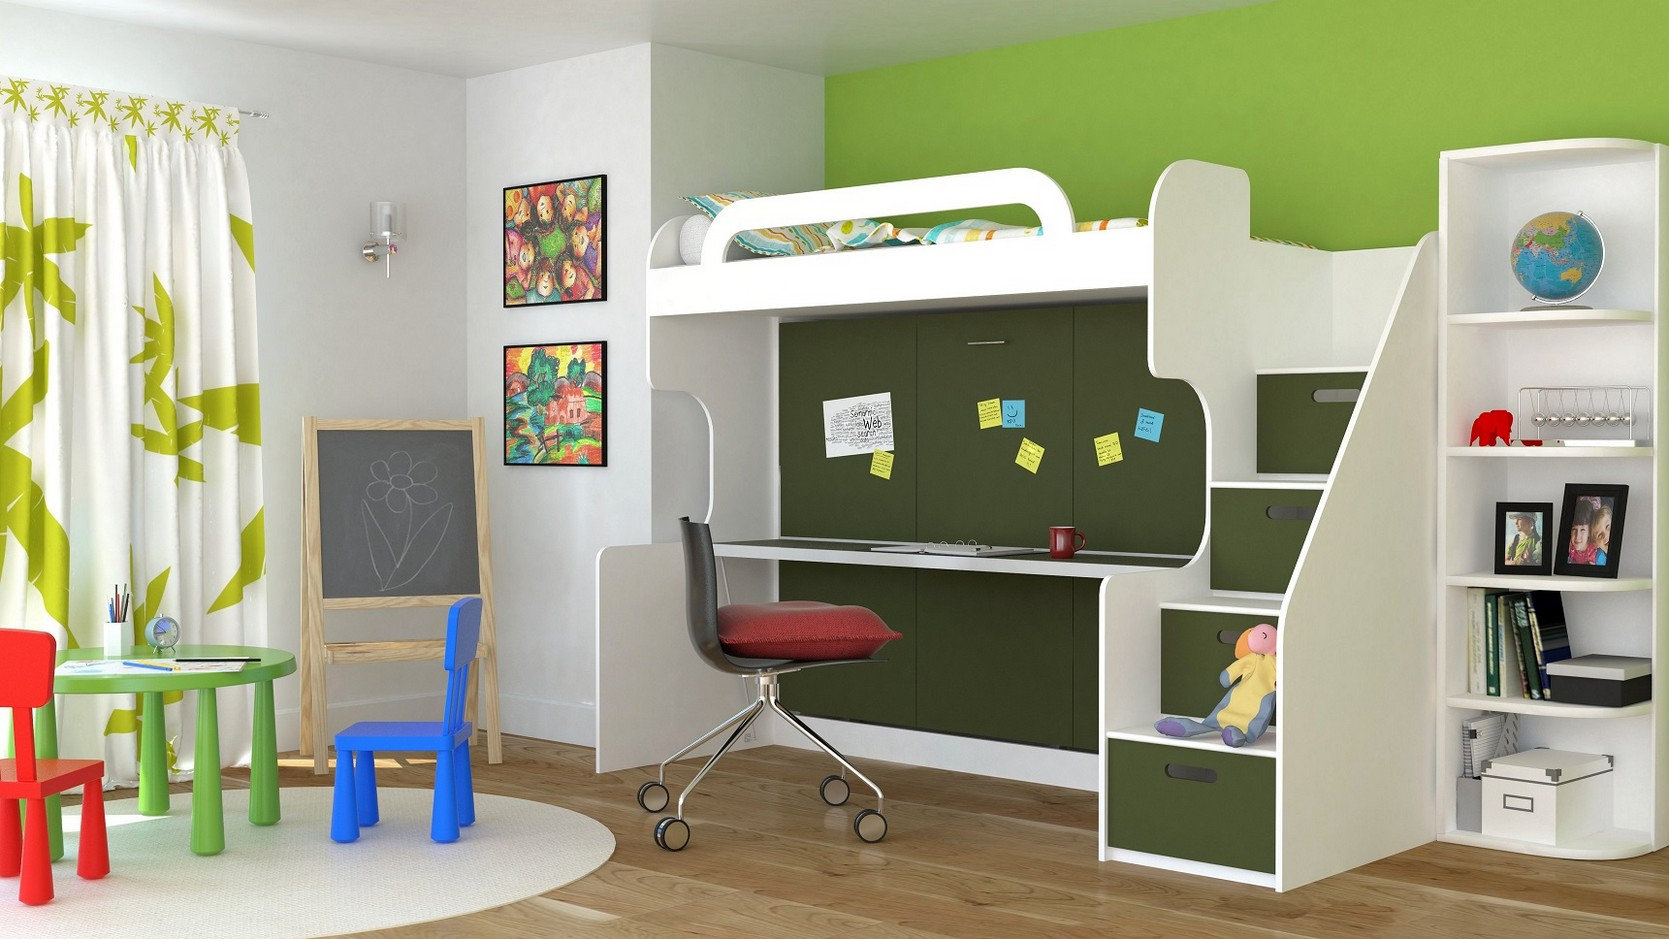 Picture of: Bunk Beds Useful Safety Tips To Know Liveblog Spot